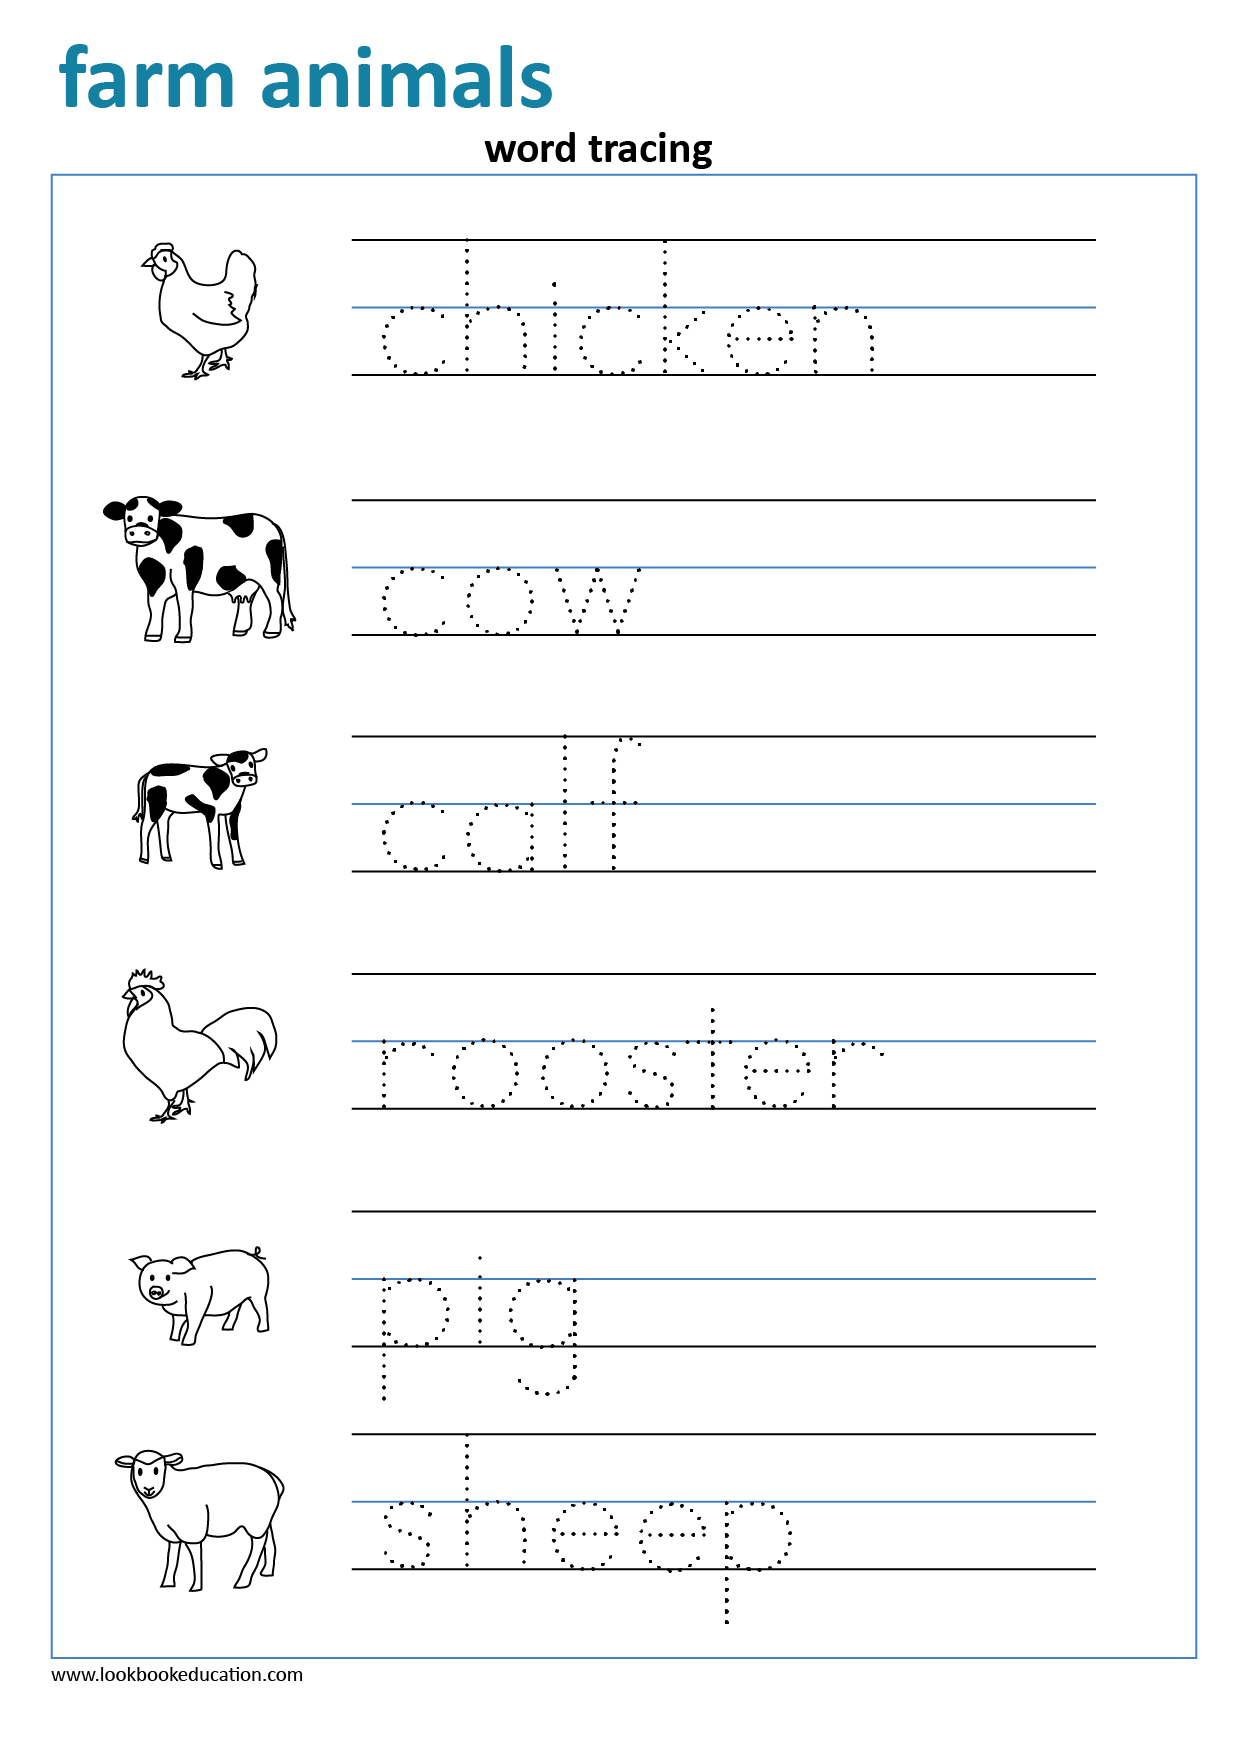 Worksheet Word Tracing Farm Animals